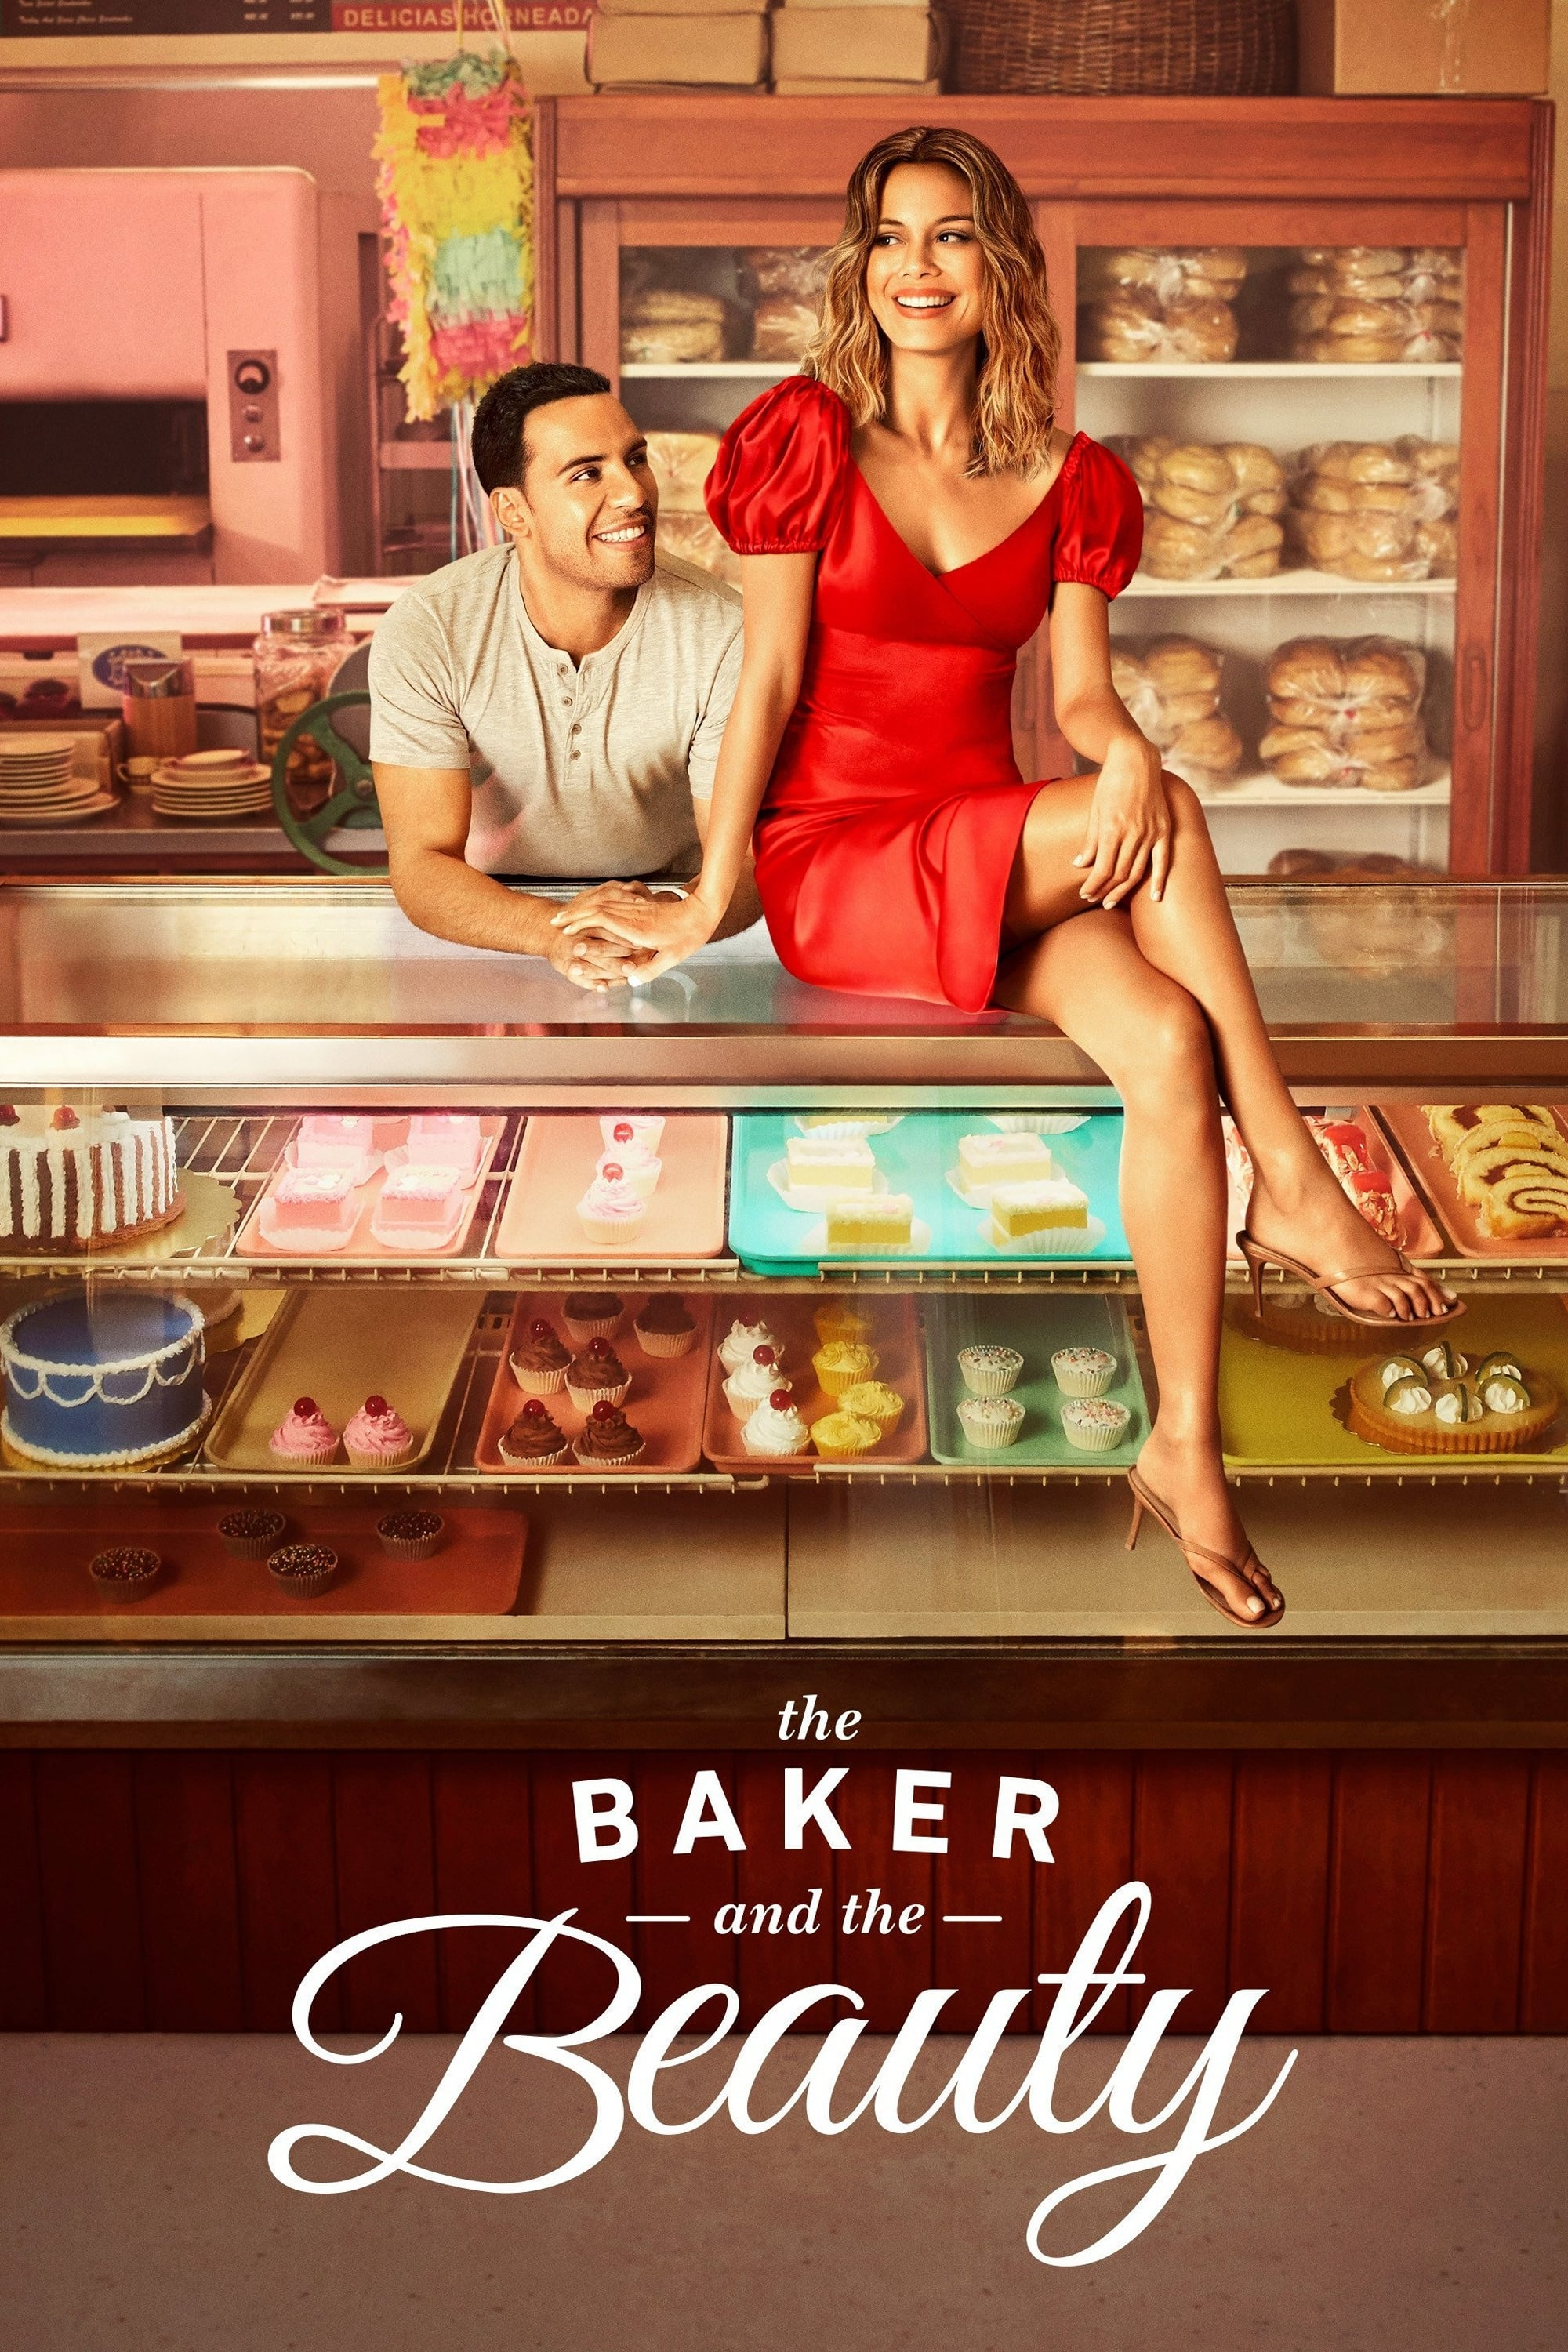 The Baker and the Beauty (2020)